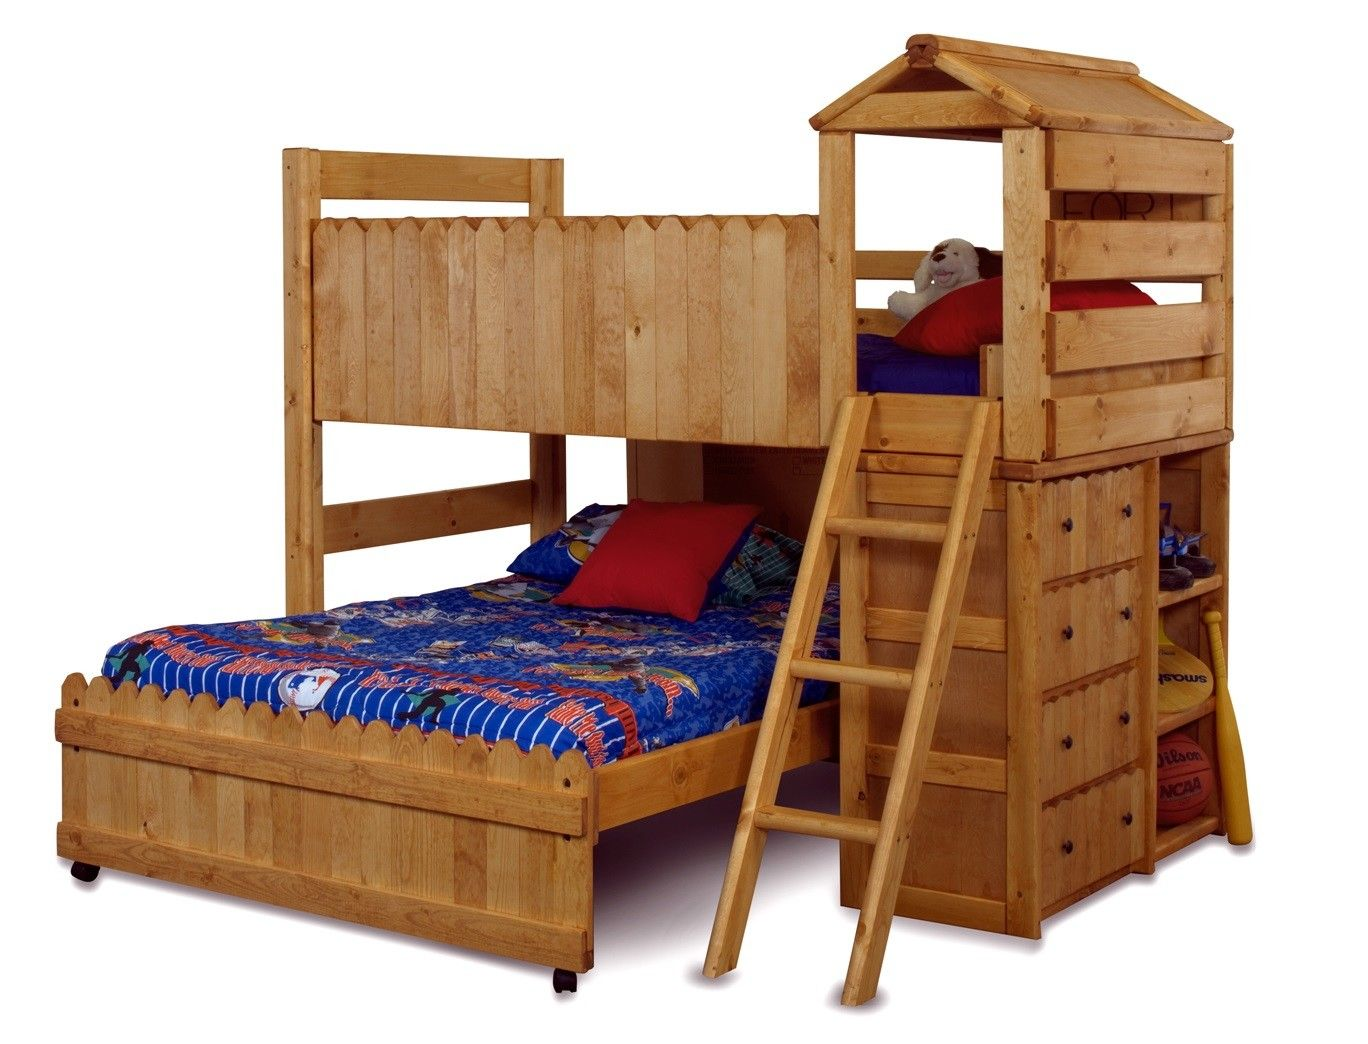 21 Top Wooden L Shaped Bunk Beds With Space Saving Features Kid Beds Bunk Bed Designs Kids Bunk Beds